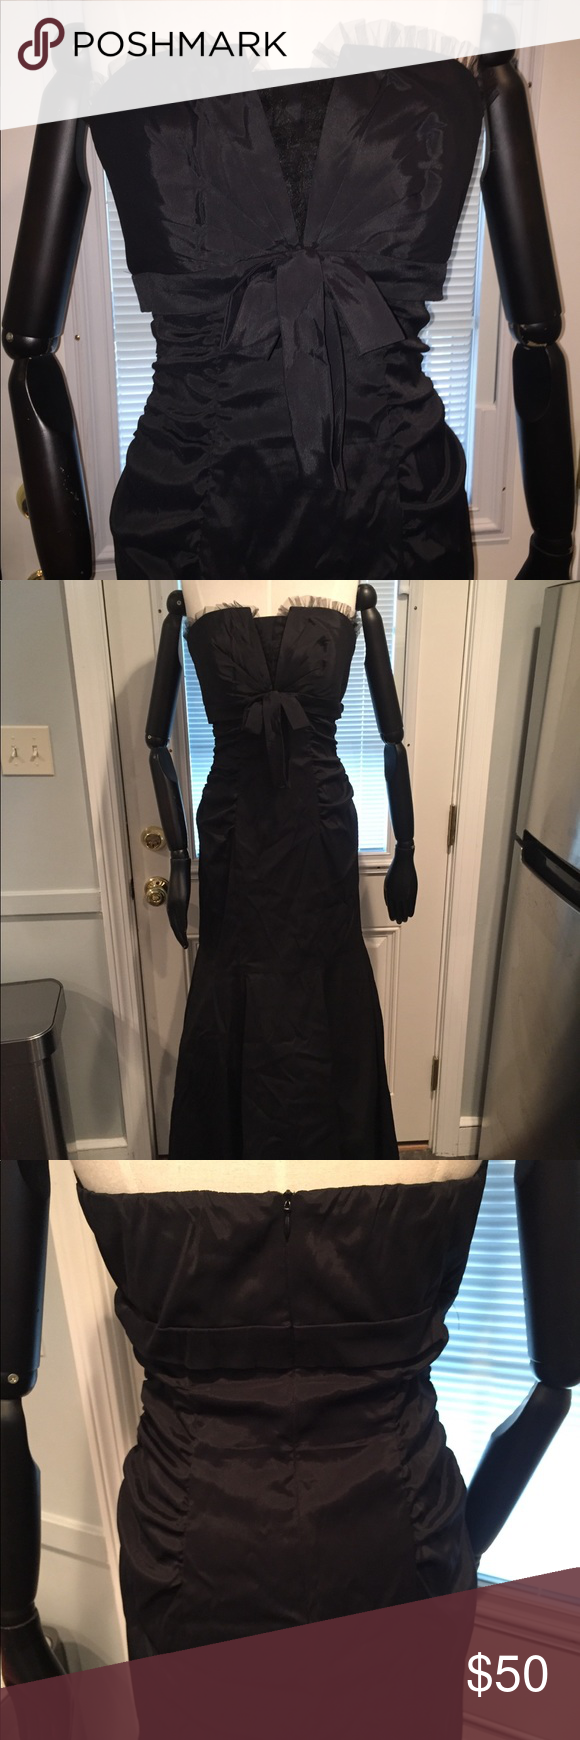 Prom dress bridesmaid black prom dresses black prom and xscape